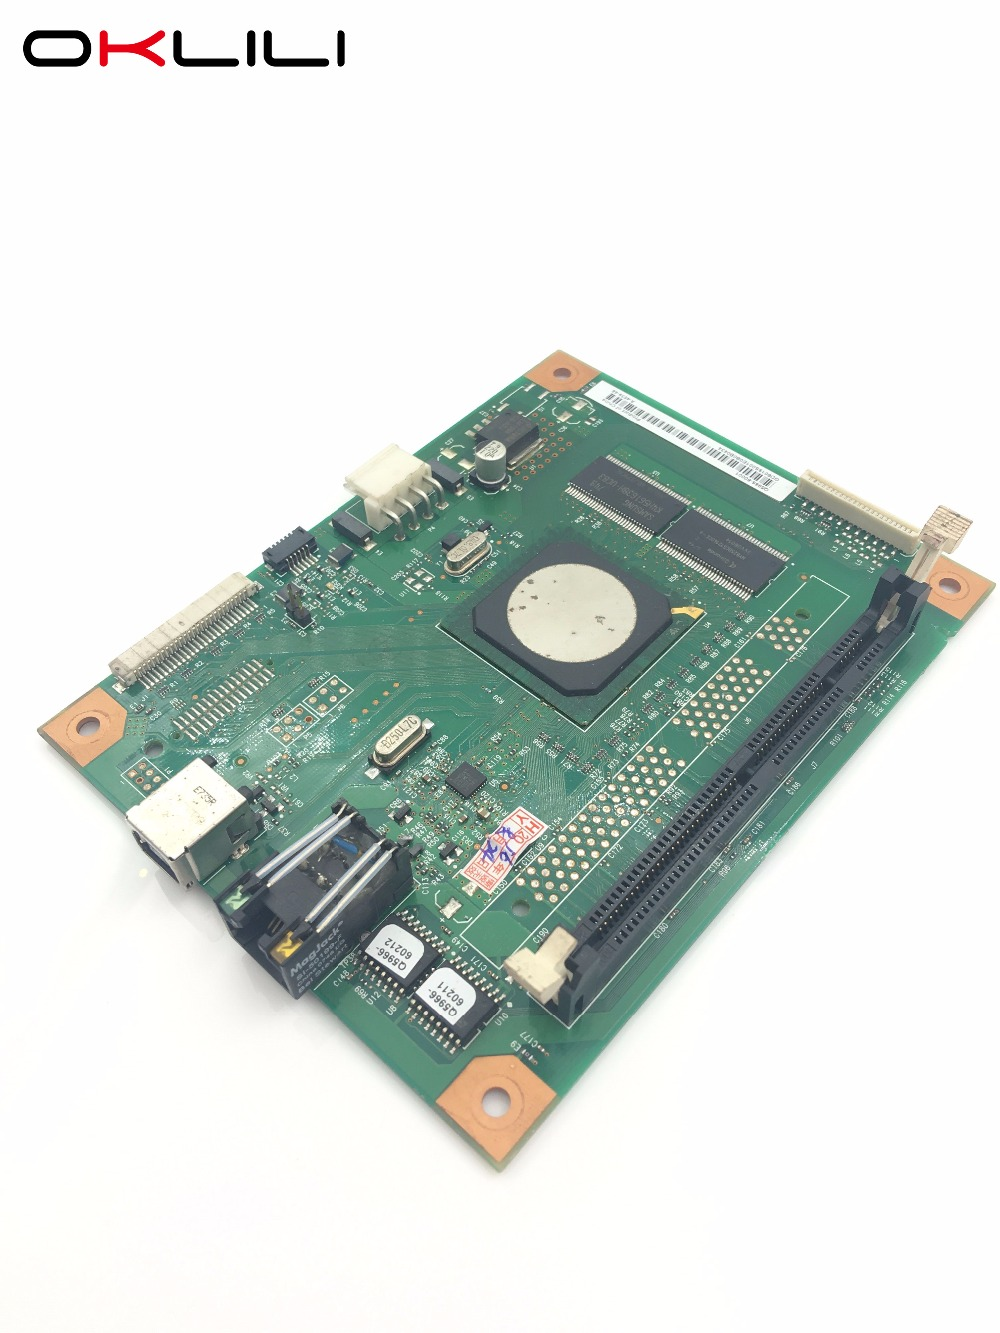 Q5966-60001 FORMATTER PCA ASSY Formatter Board Network logic Main Mother Board MainBoard for HP CLJ 2605 2605N 2605dn 2605dtn ce832 60001 mainboard main board for hp laserjet m1213 m1212 m1213nf m1212nf 1213 1212 printer formatter board